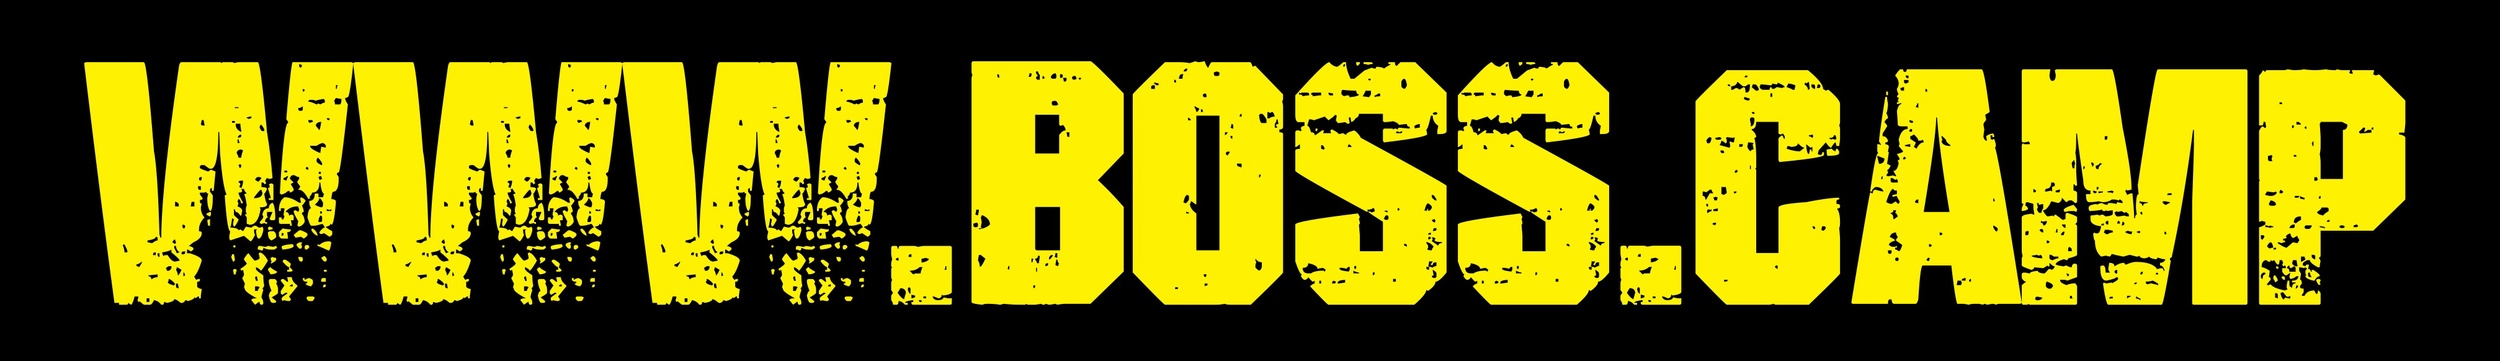 Be a better boss and get better staff performance in just an hour a week with www.boss.camp Jpeg